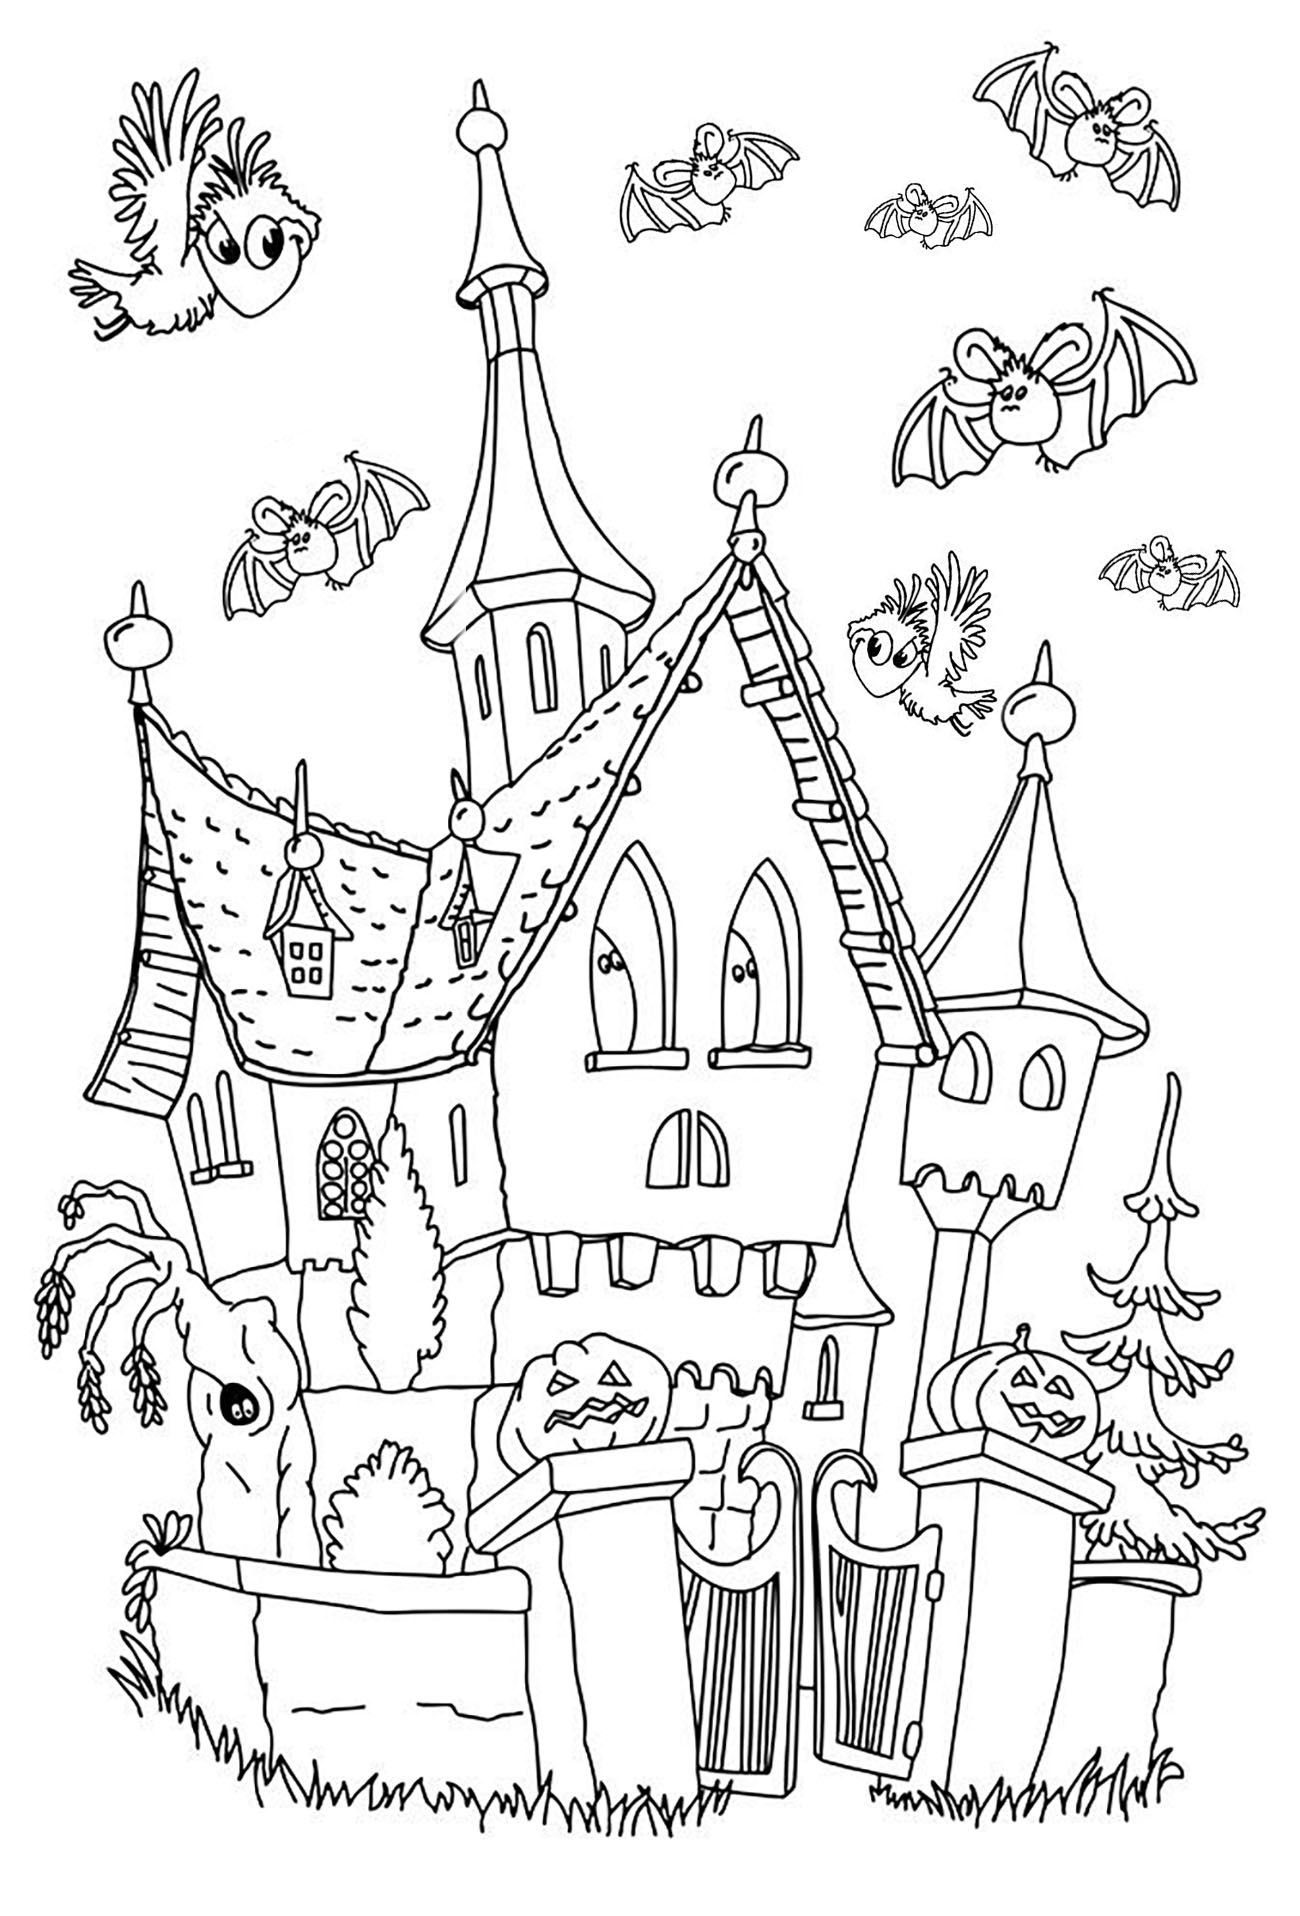 Haunted Castle Cartoon Style From The Gallery Events Halloween Halloween Coloring Pages Halloween Coloring Coloring Book Pages